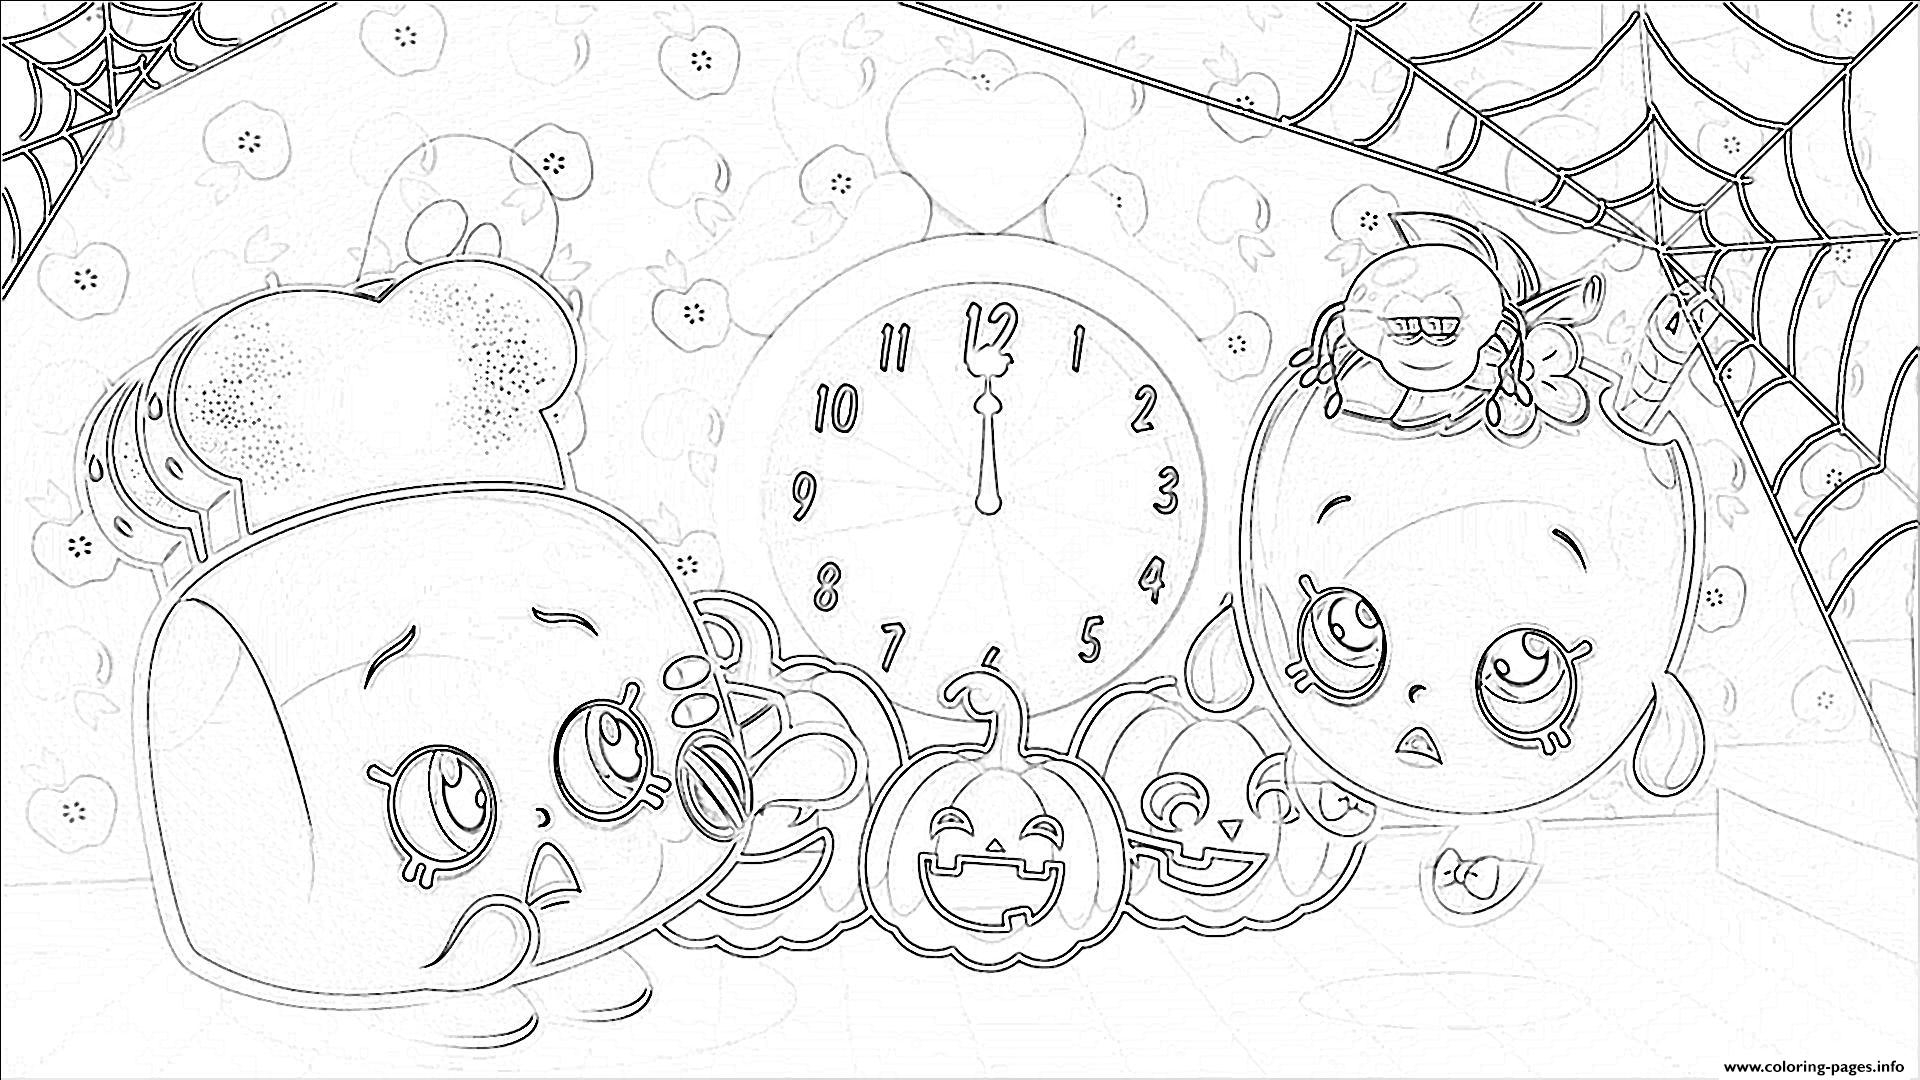 moana coloring pages - shopkins halloween pumpkins printable coloring pages book